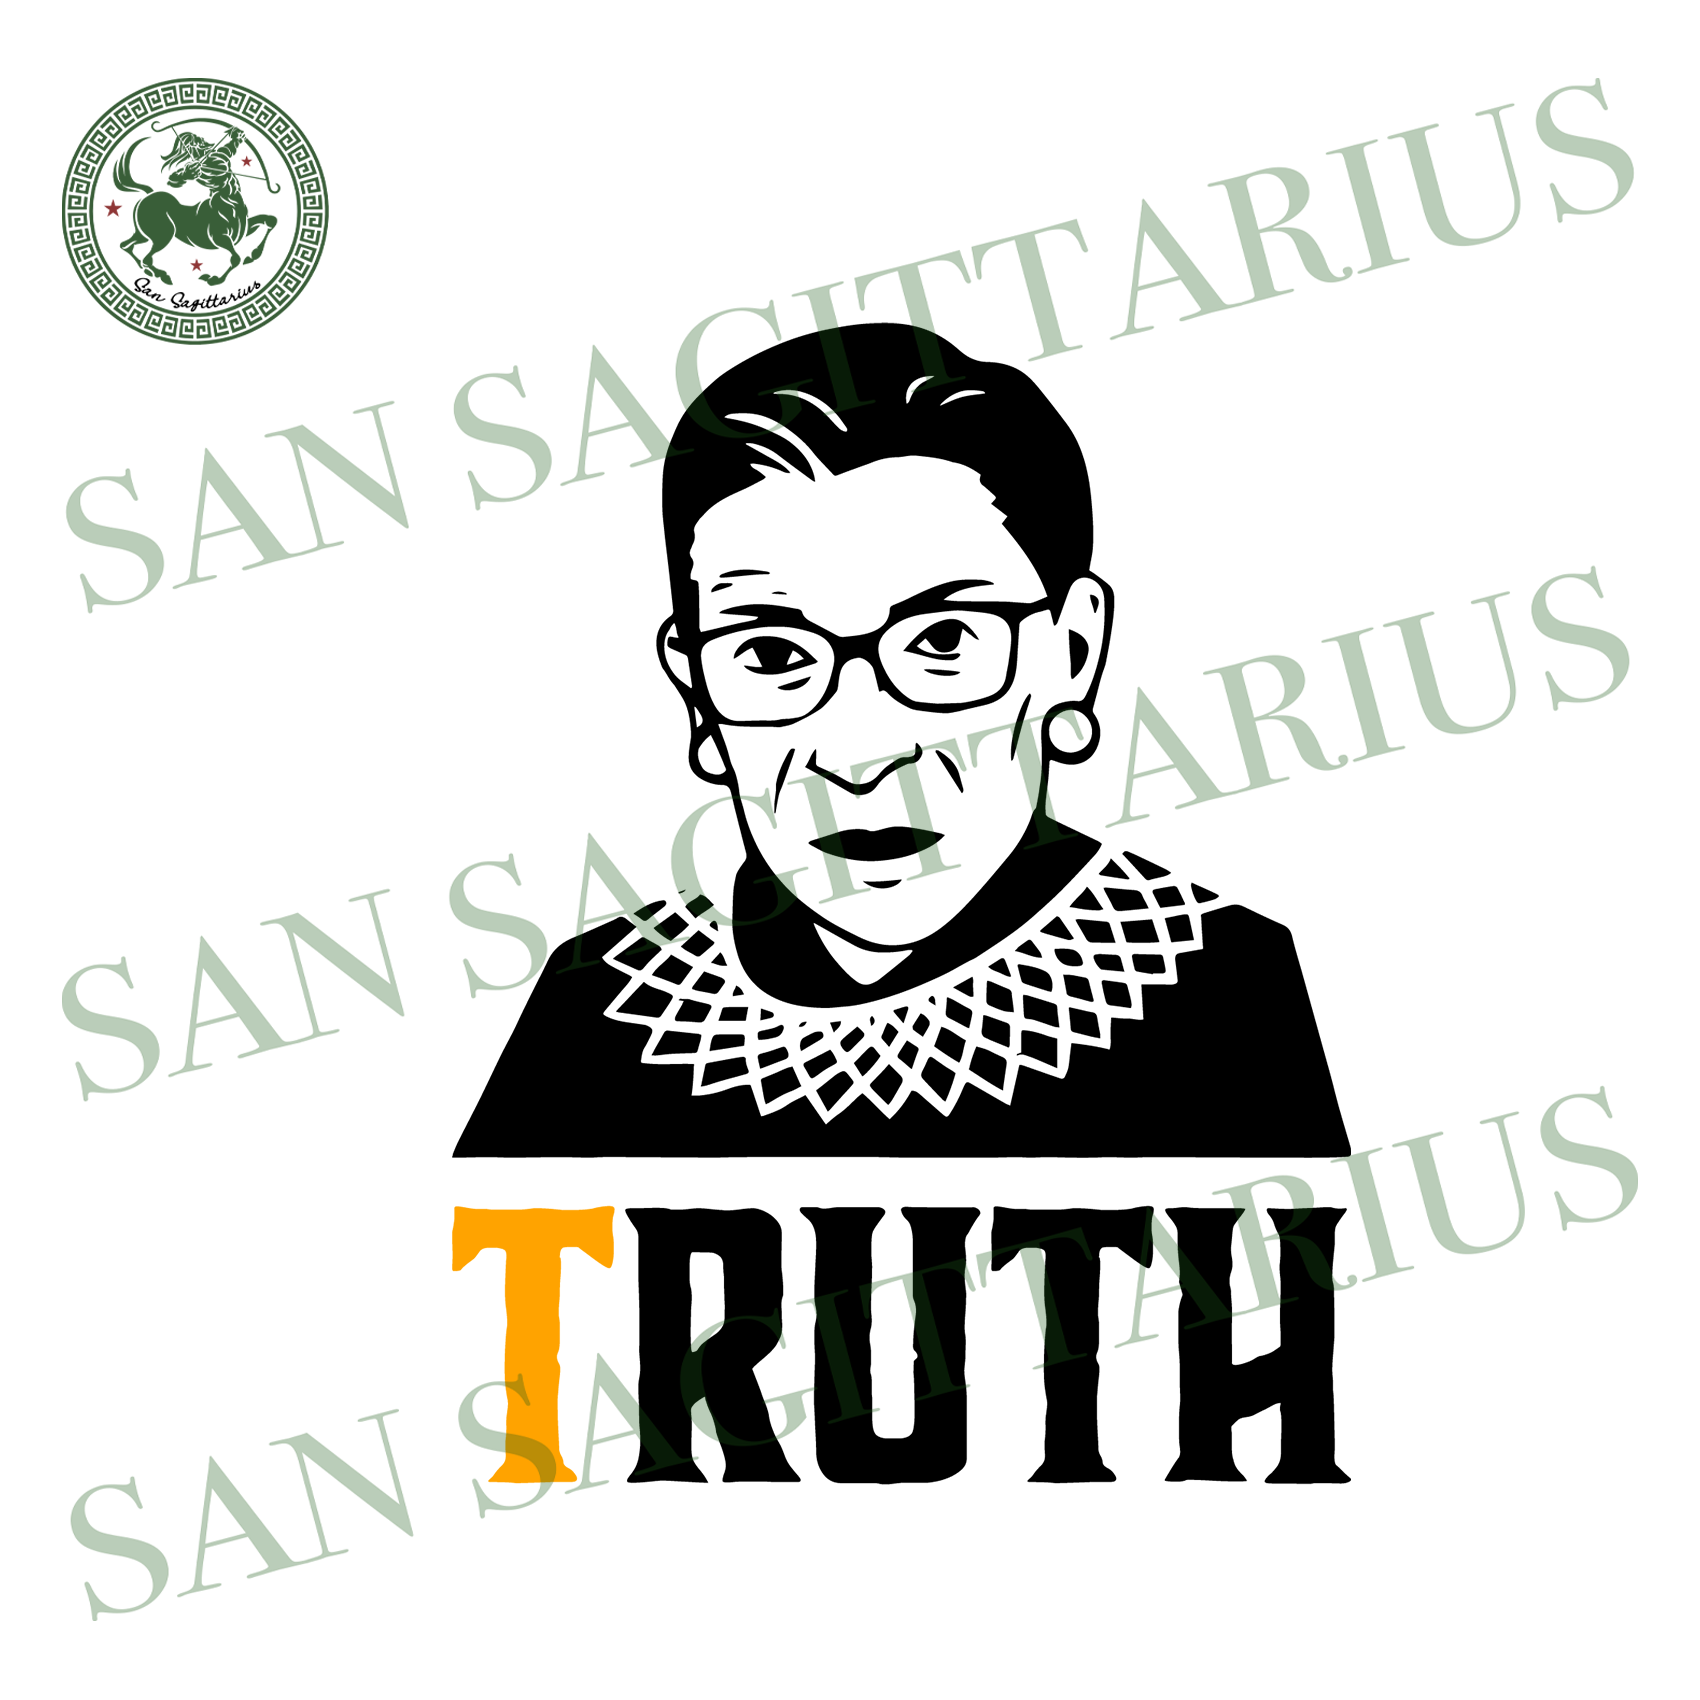 Ruth Bader Ginsburg Svg,Feminist Shirt, Notorious Rbg Svg, Ruth Bader Ginsburg Shirt,Vintage Ruth Bader Ginsburg Svg,Human Rights, Queen Crown Supreme Court,Trending 2020 Svg